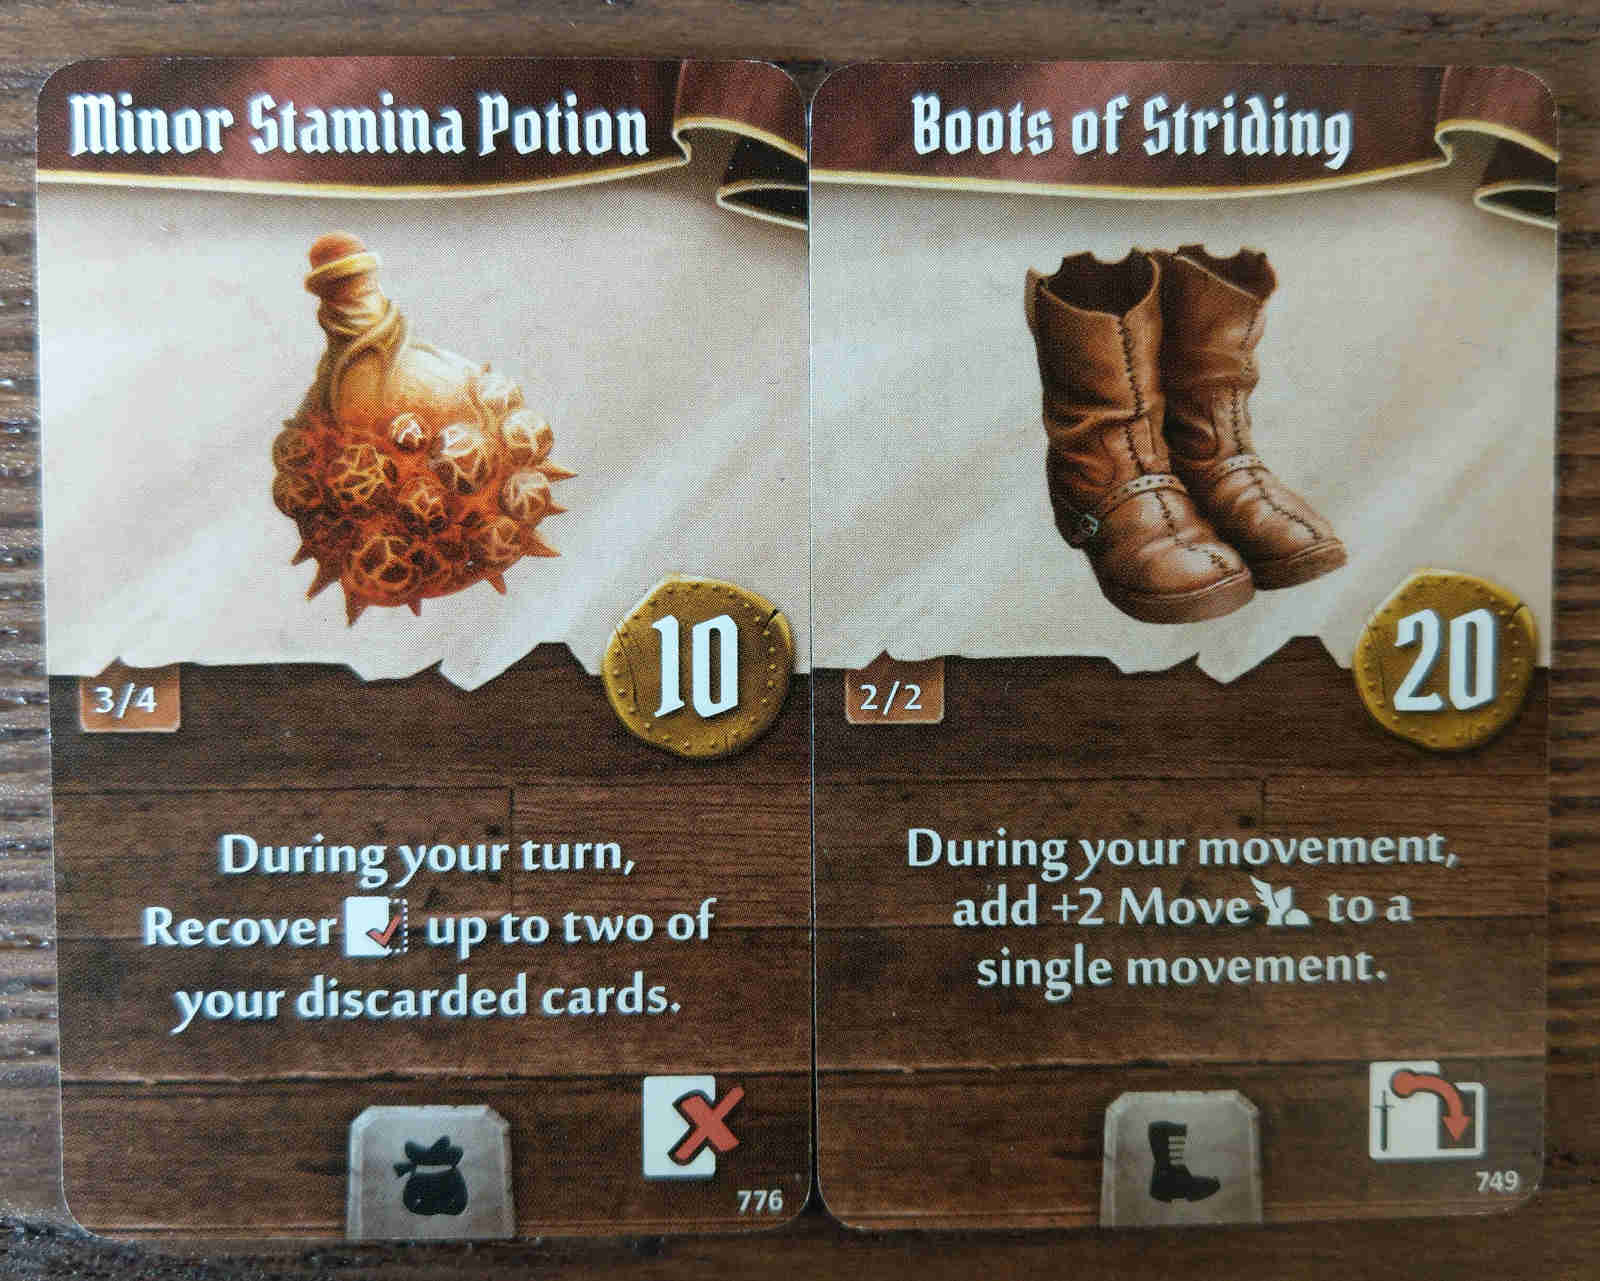 Soothsinger starting items - Minor Stamina Potion and Boots of Striding